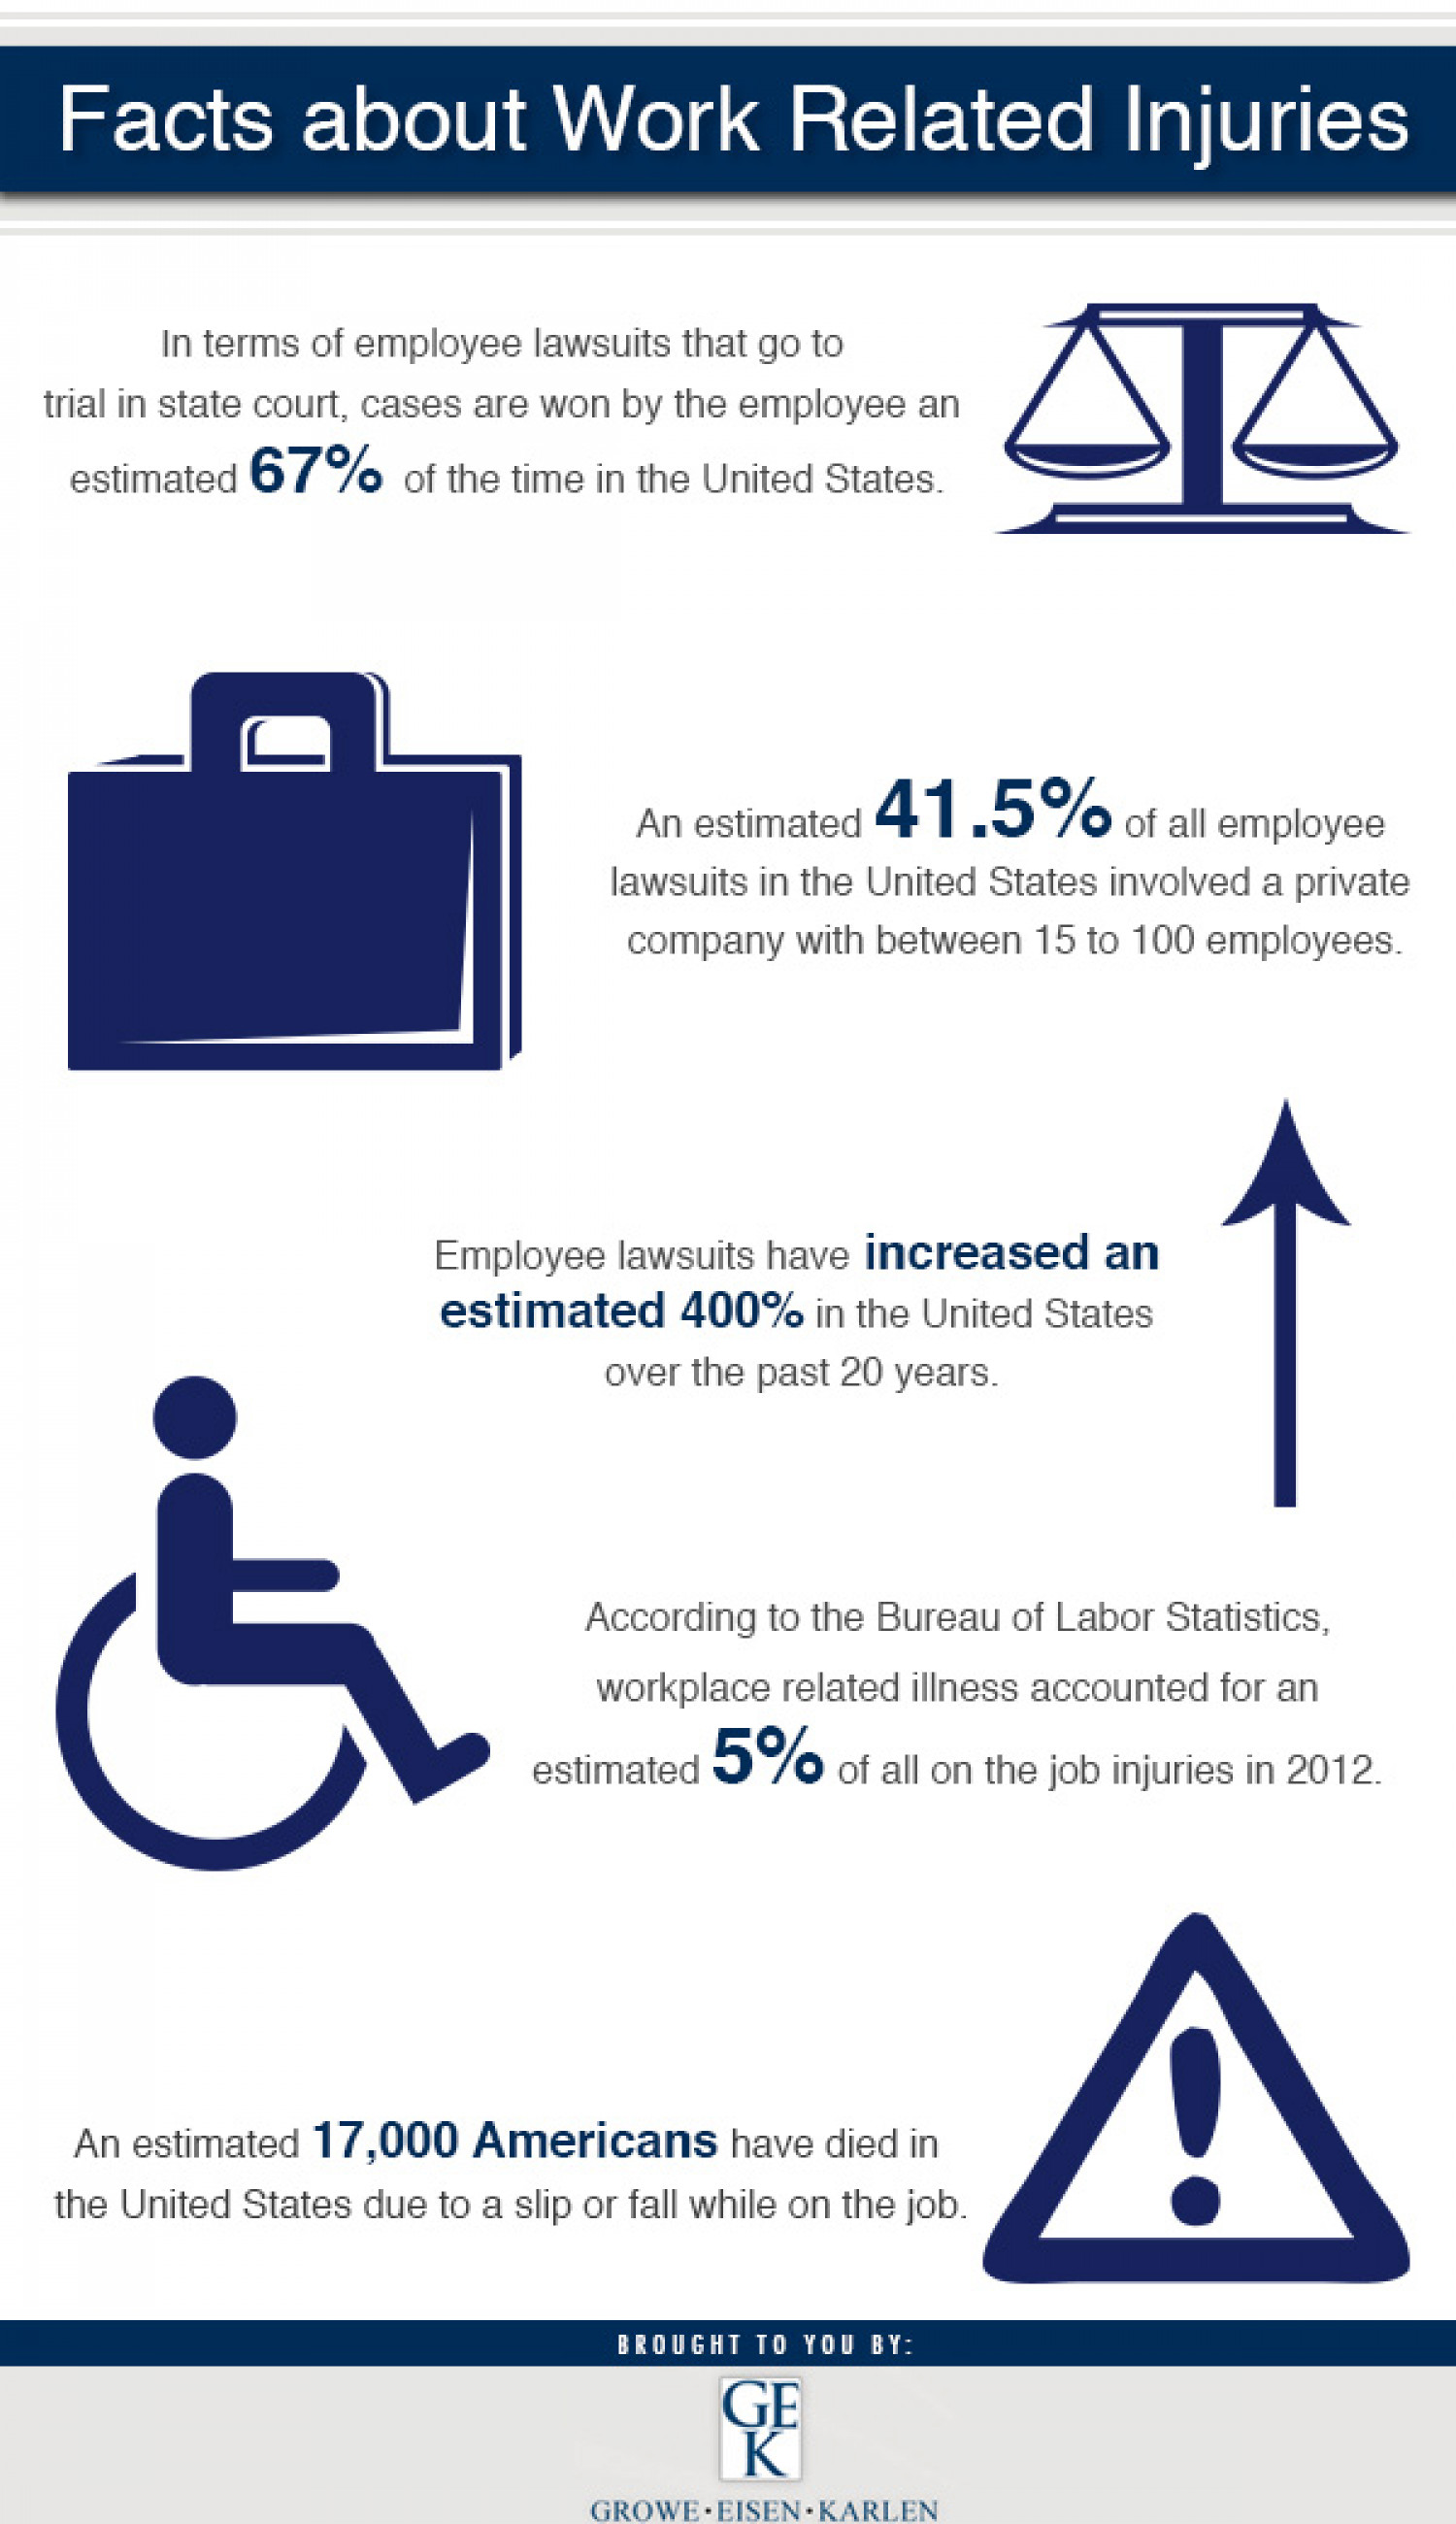 Facts About Work Related Injuries Infographic